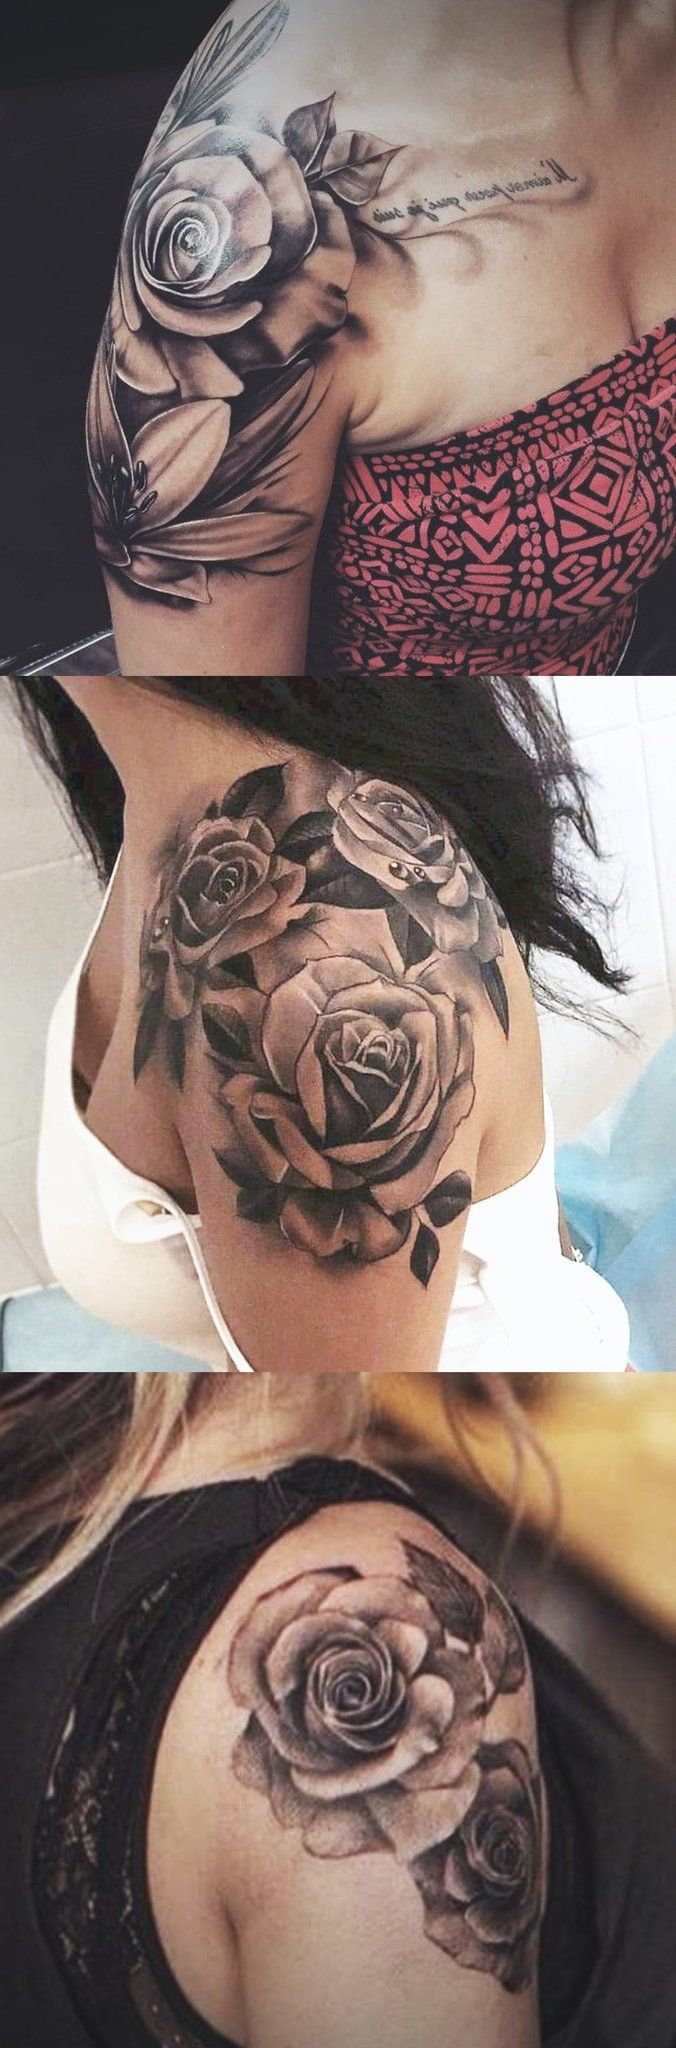 Women's pink shoulder tattoo ideas in black and white realistic left arm